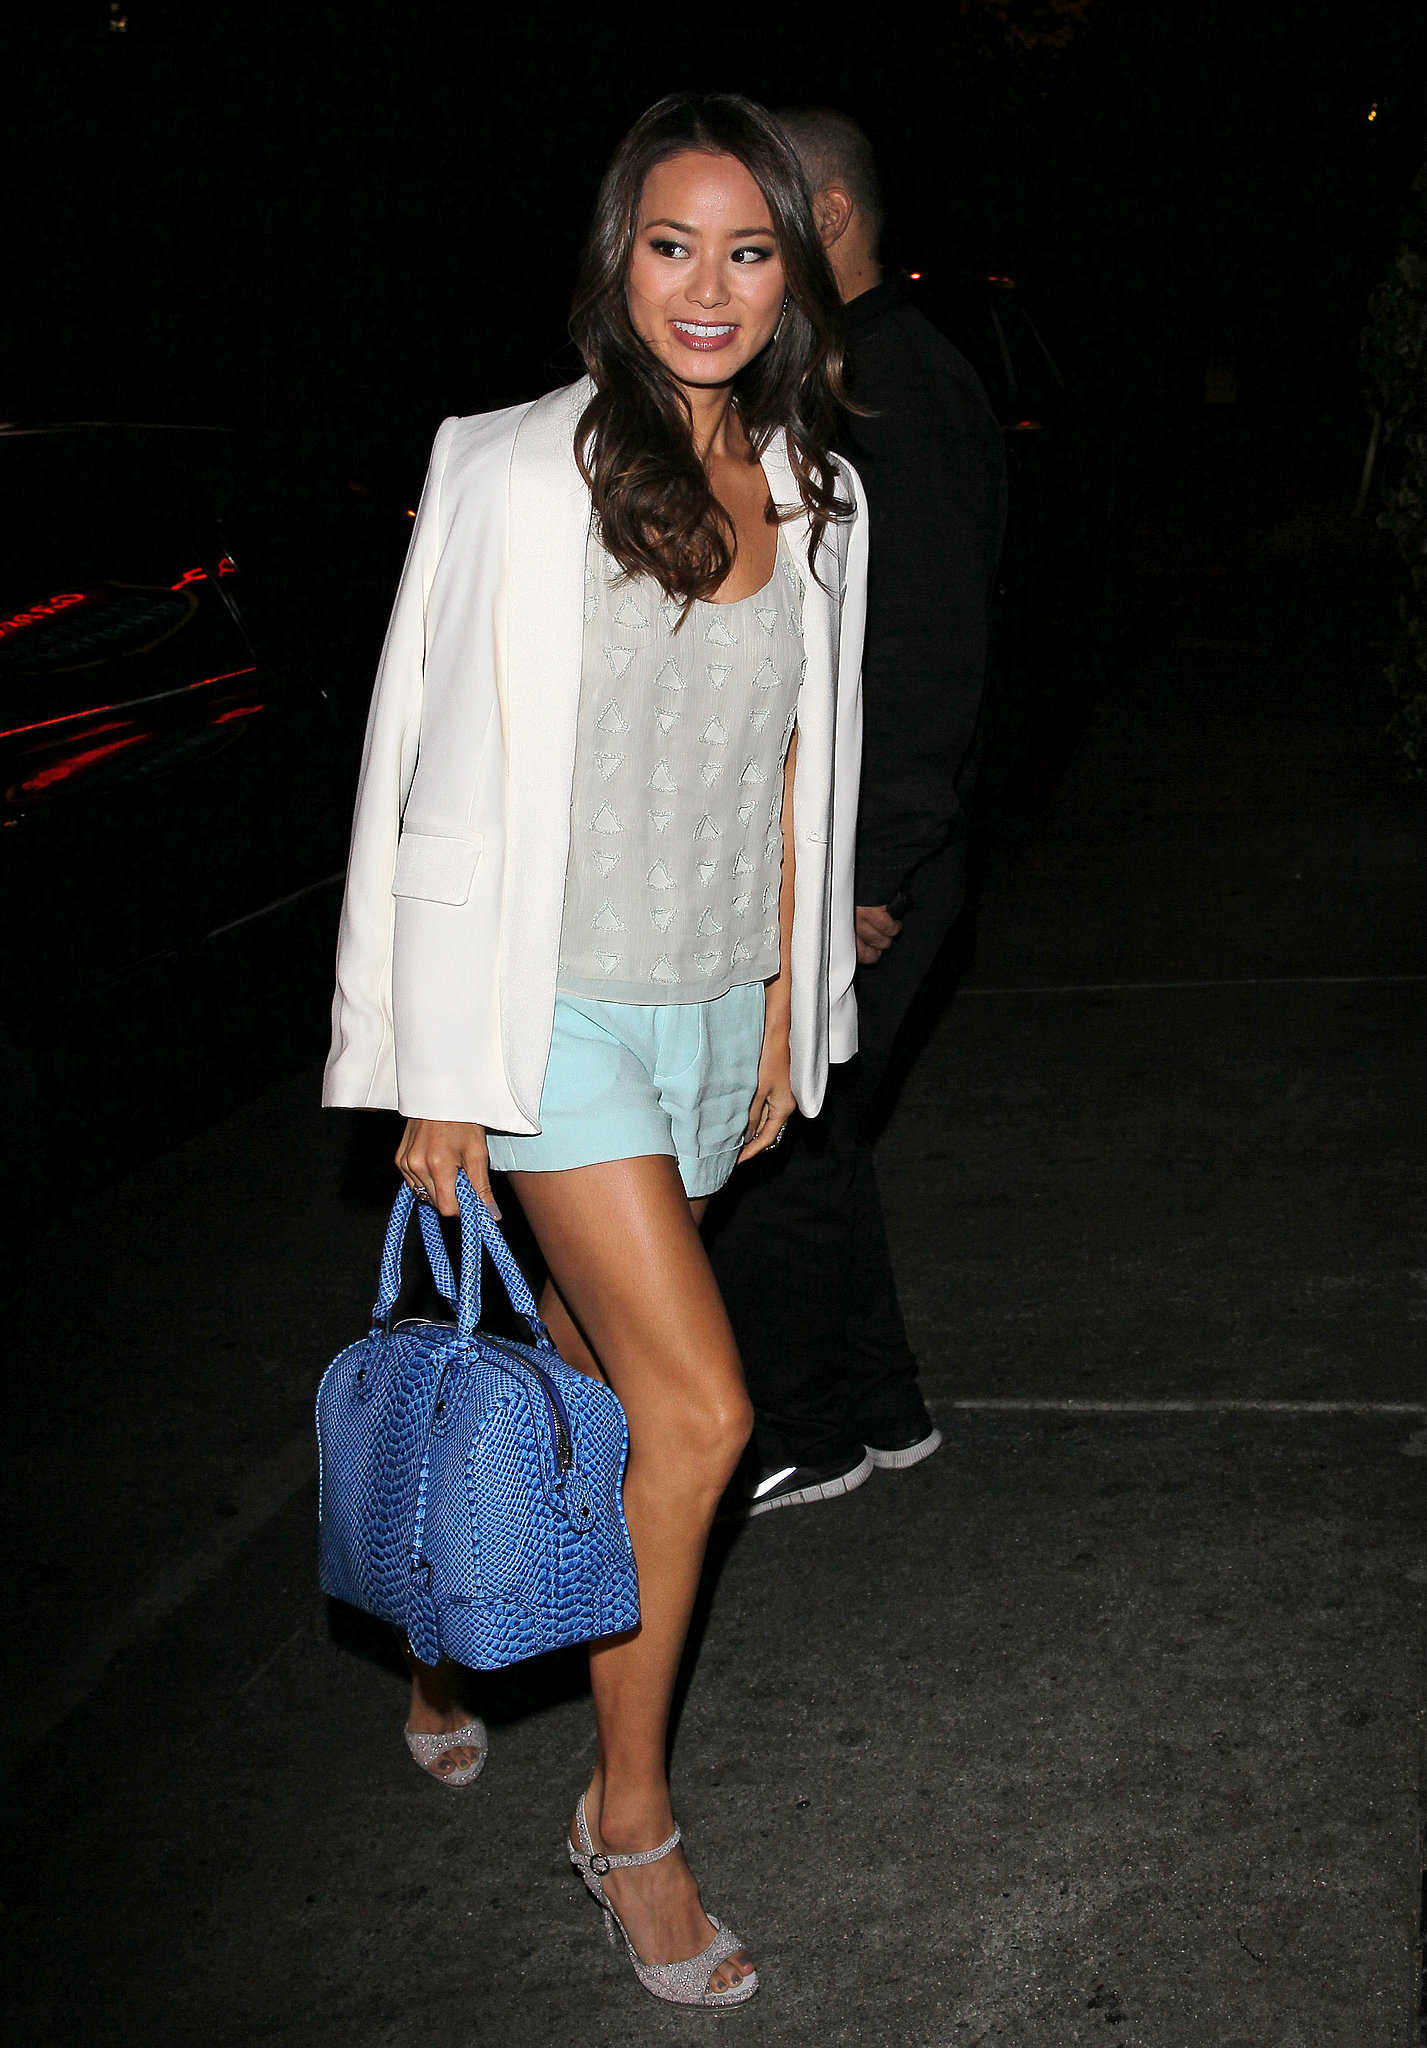 During a night out in LA, Jamie Chung threw a white blazer over her shoulders, then added color via mint shorts and a blue Alice + Olivia bag.